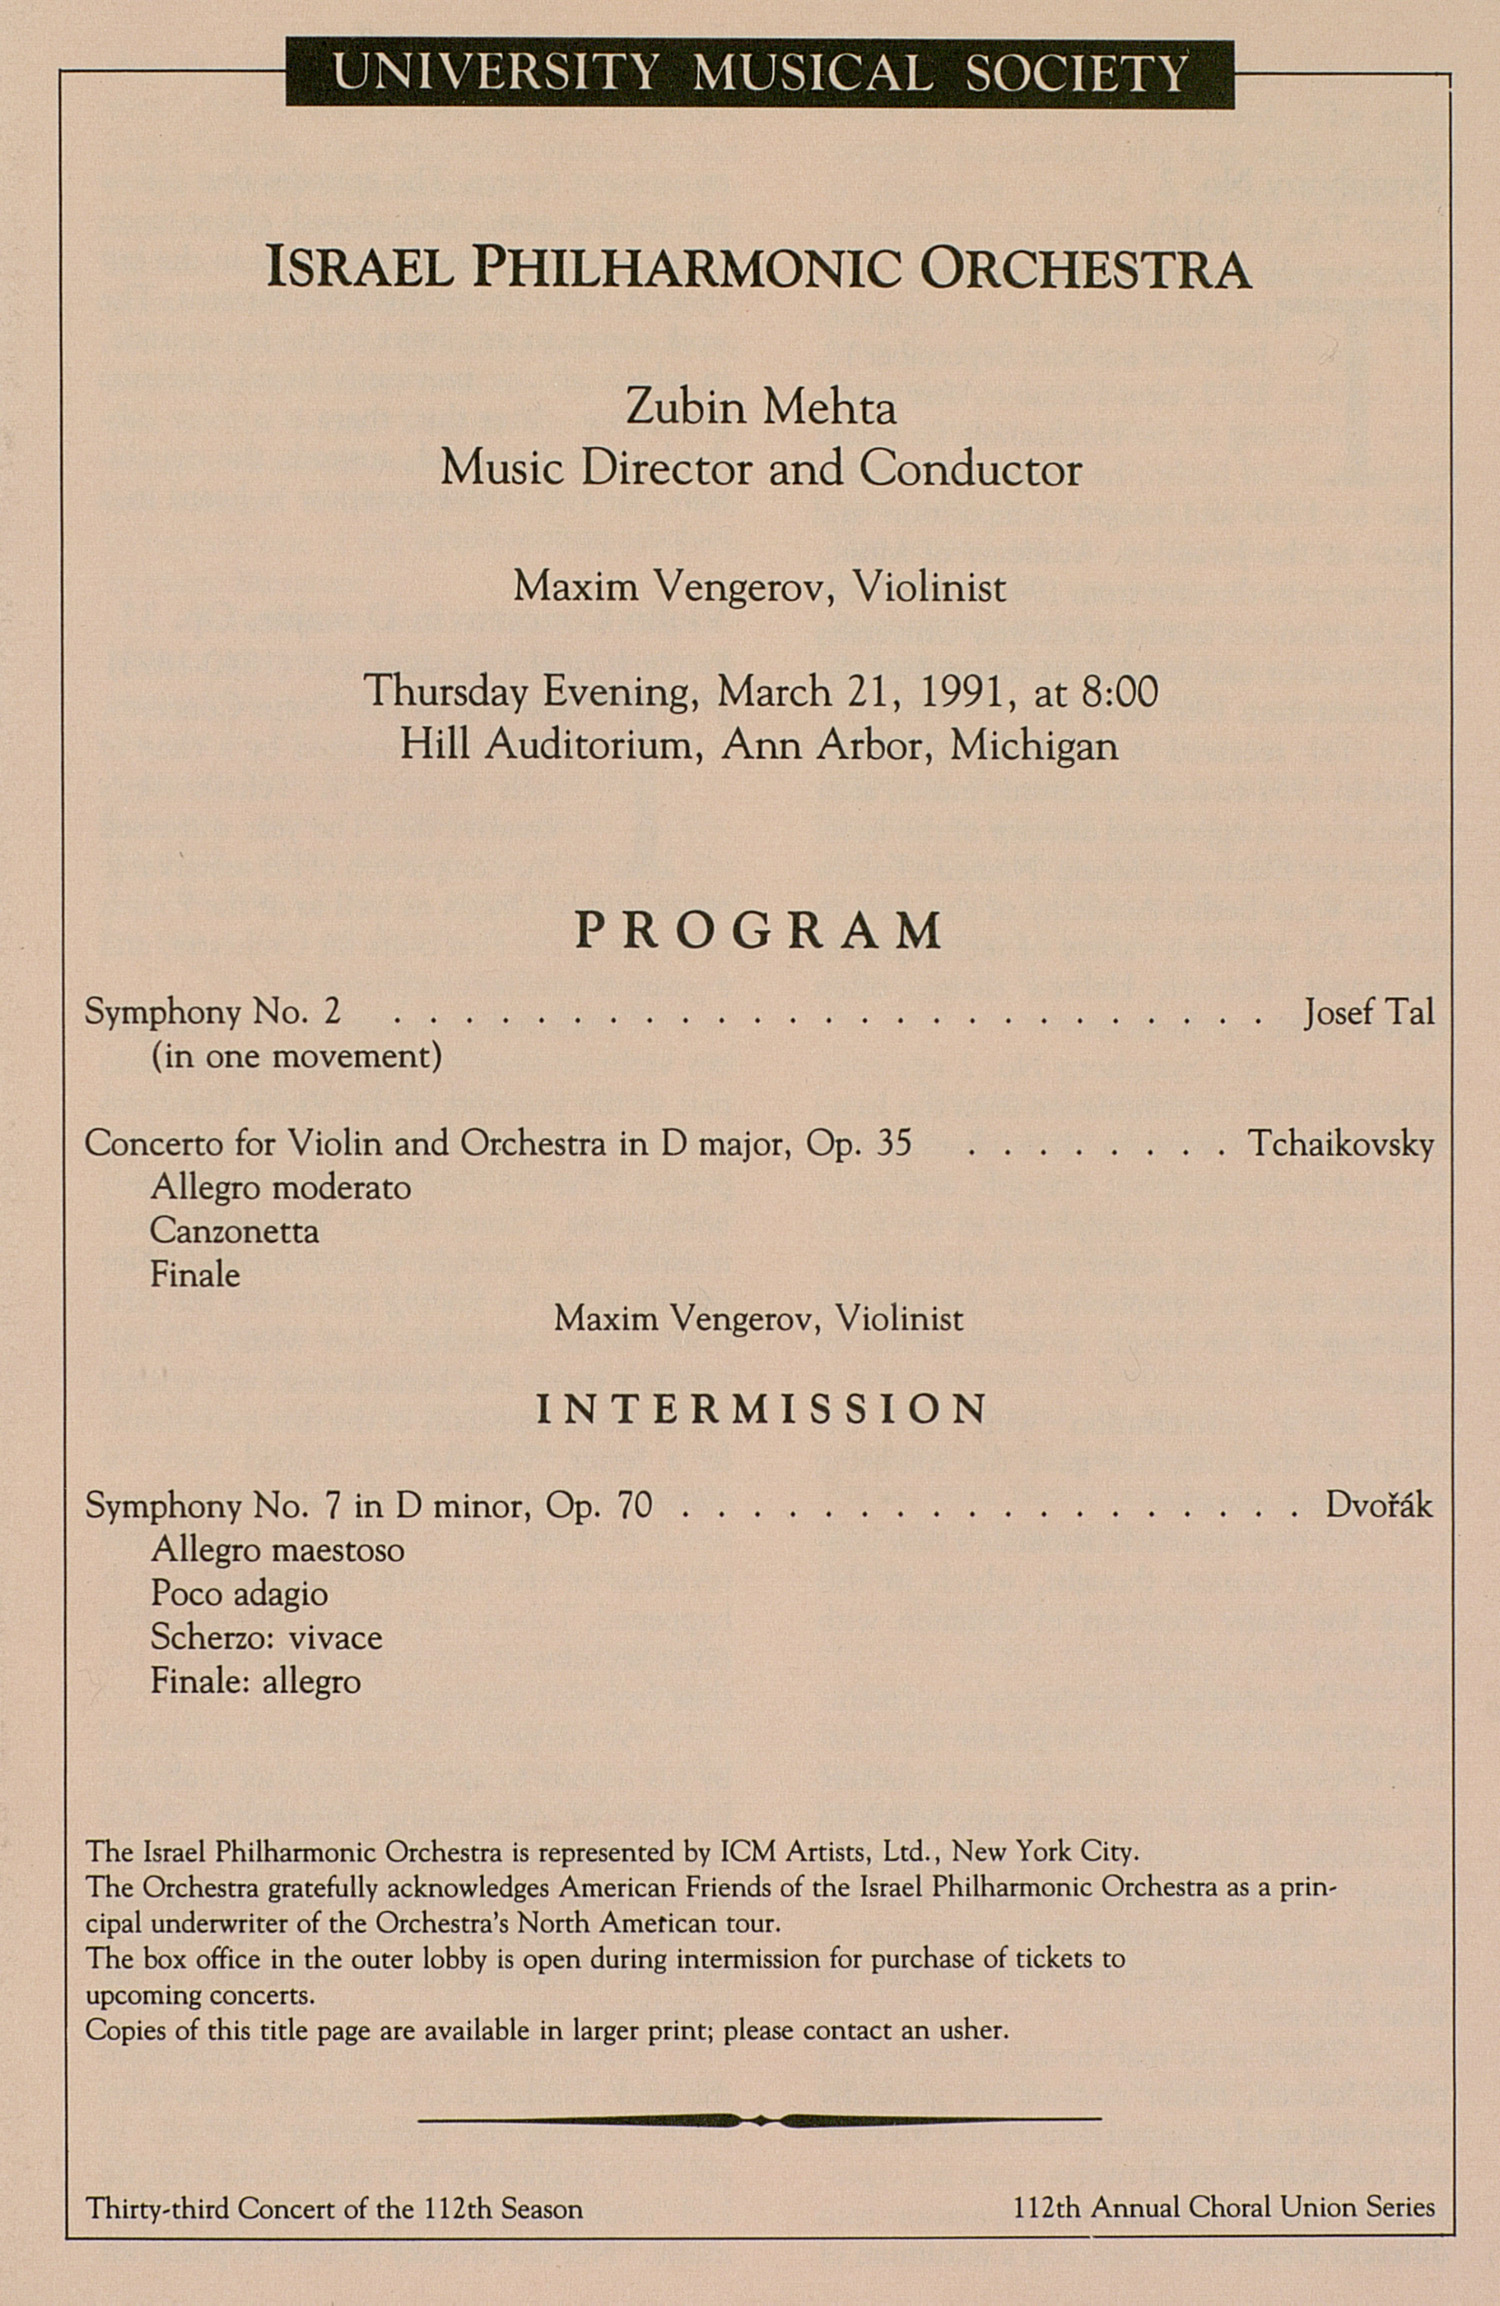 UMS Concert Program, March 21, 1991: University Musical Society -- Israel Philharmonic Orchestra image